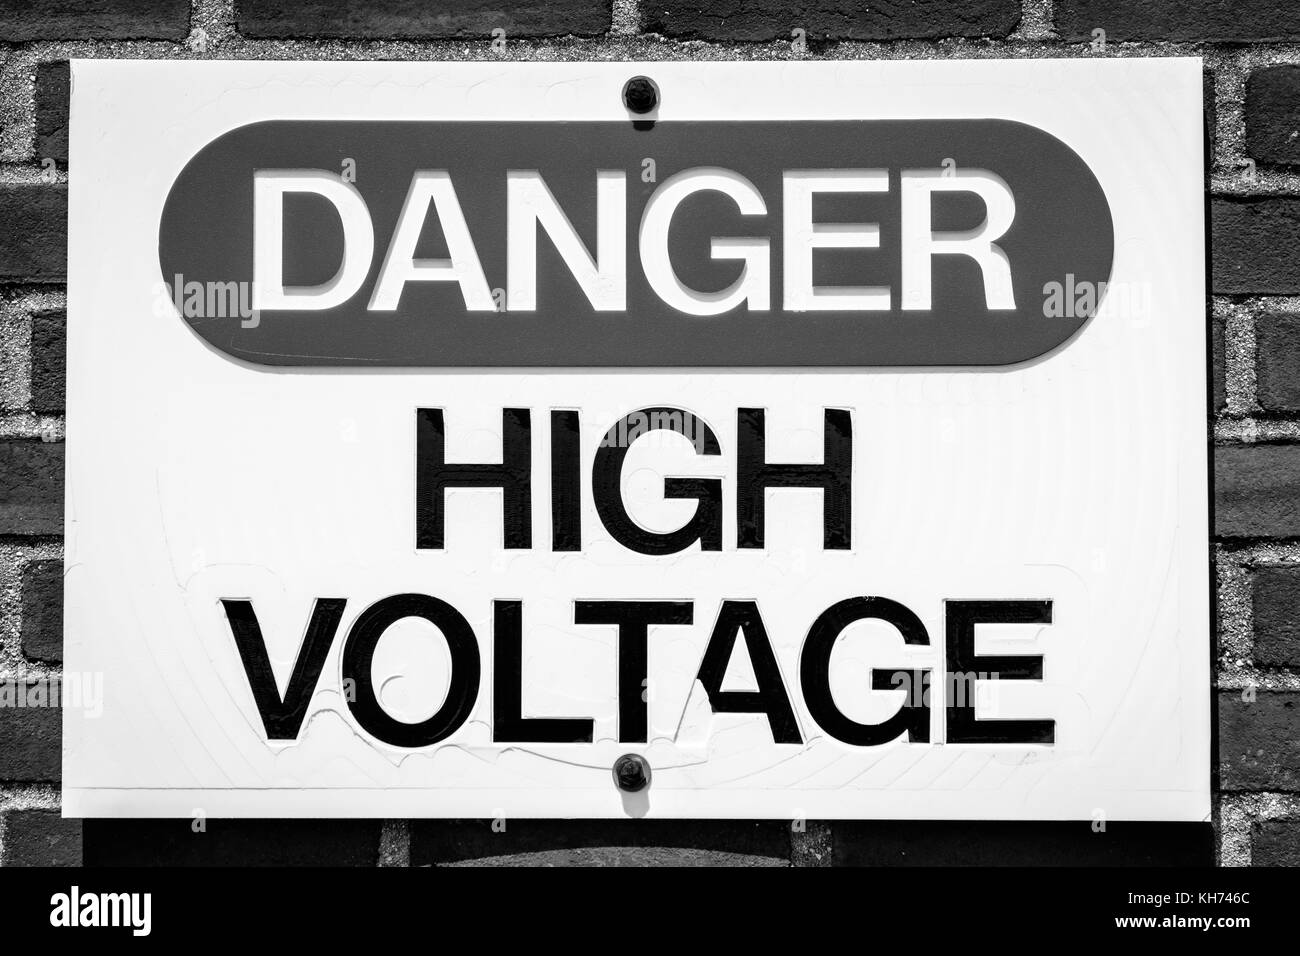 High Voltage Sign Black and White Stock Photos & Images - Alamy